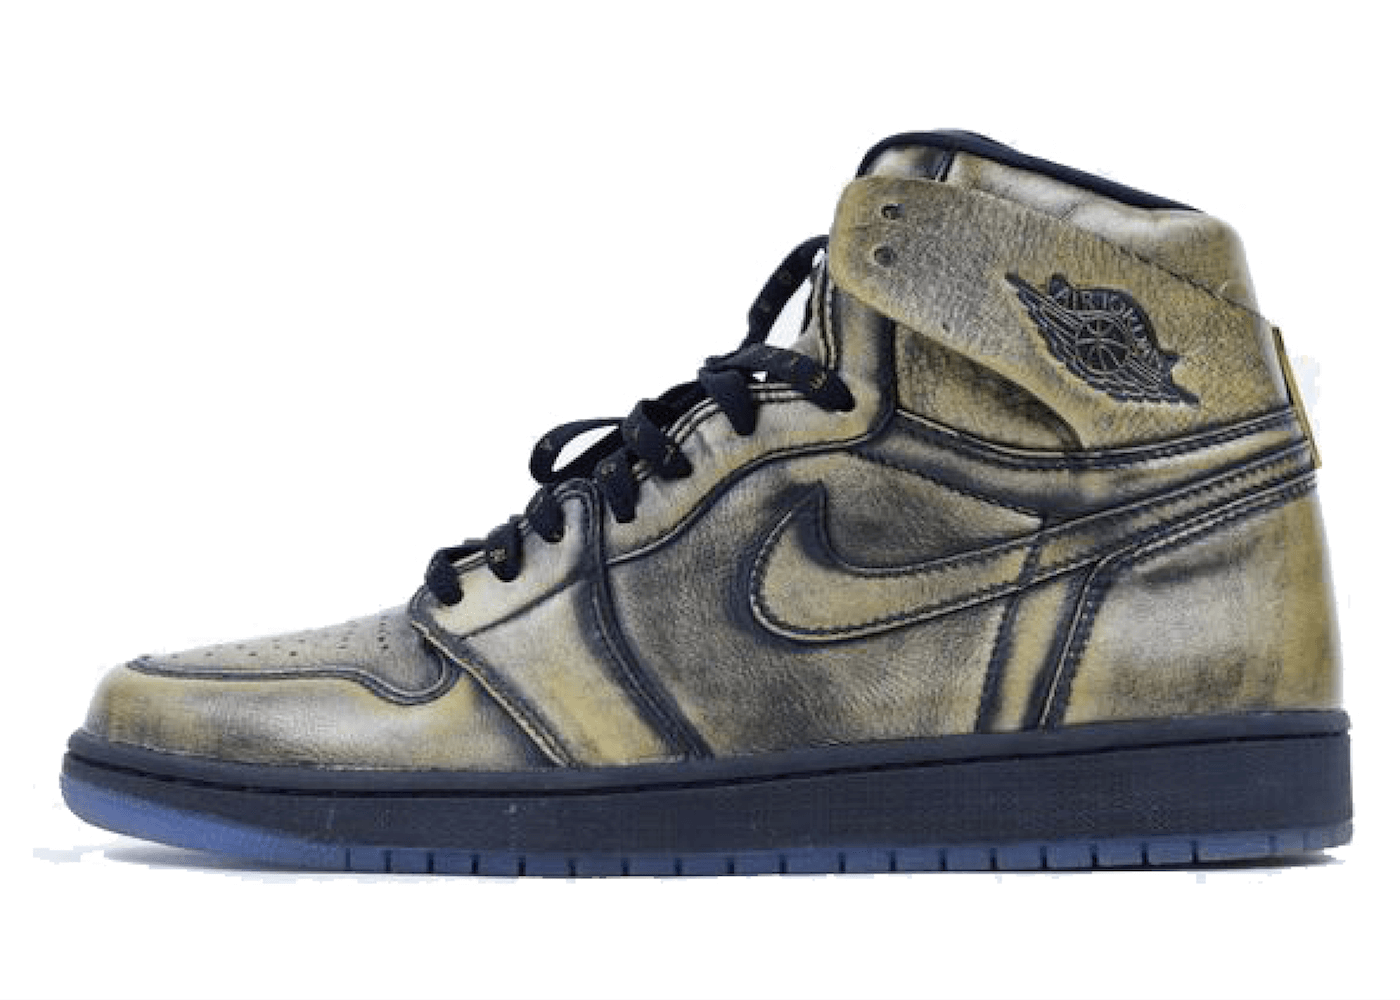 Jordan 1 Retro High Wingsの写真